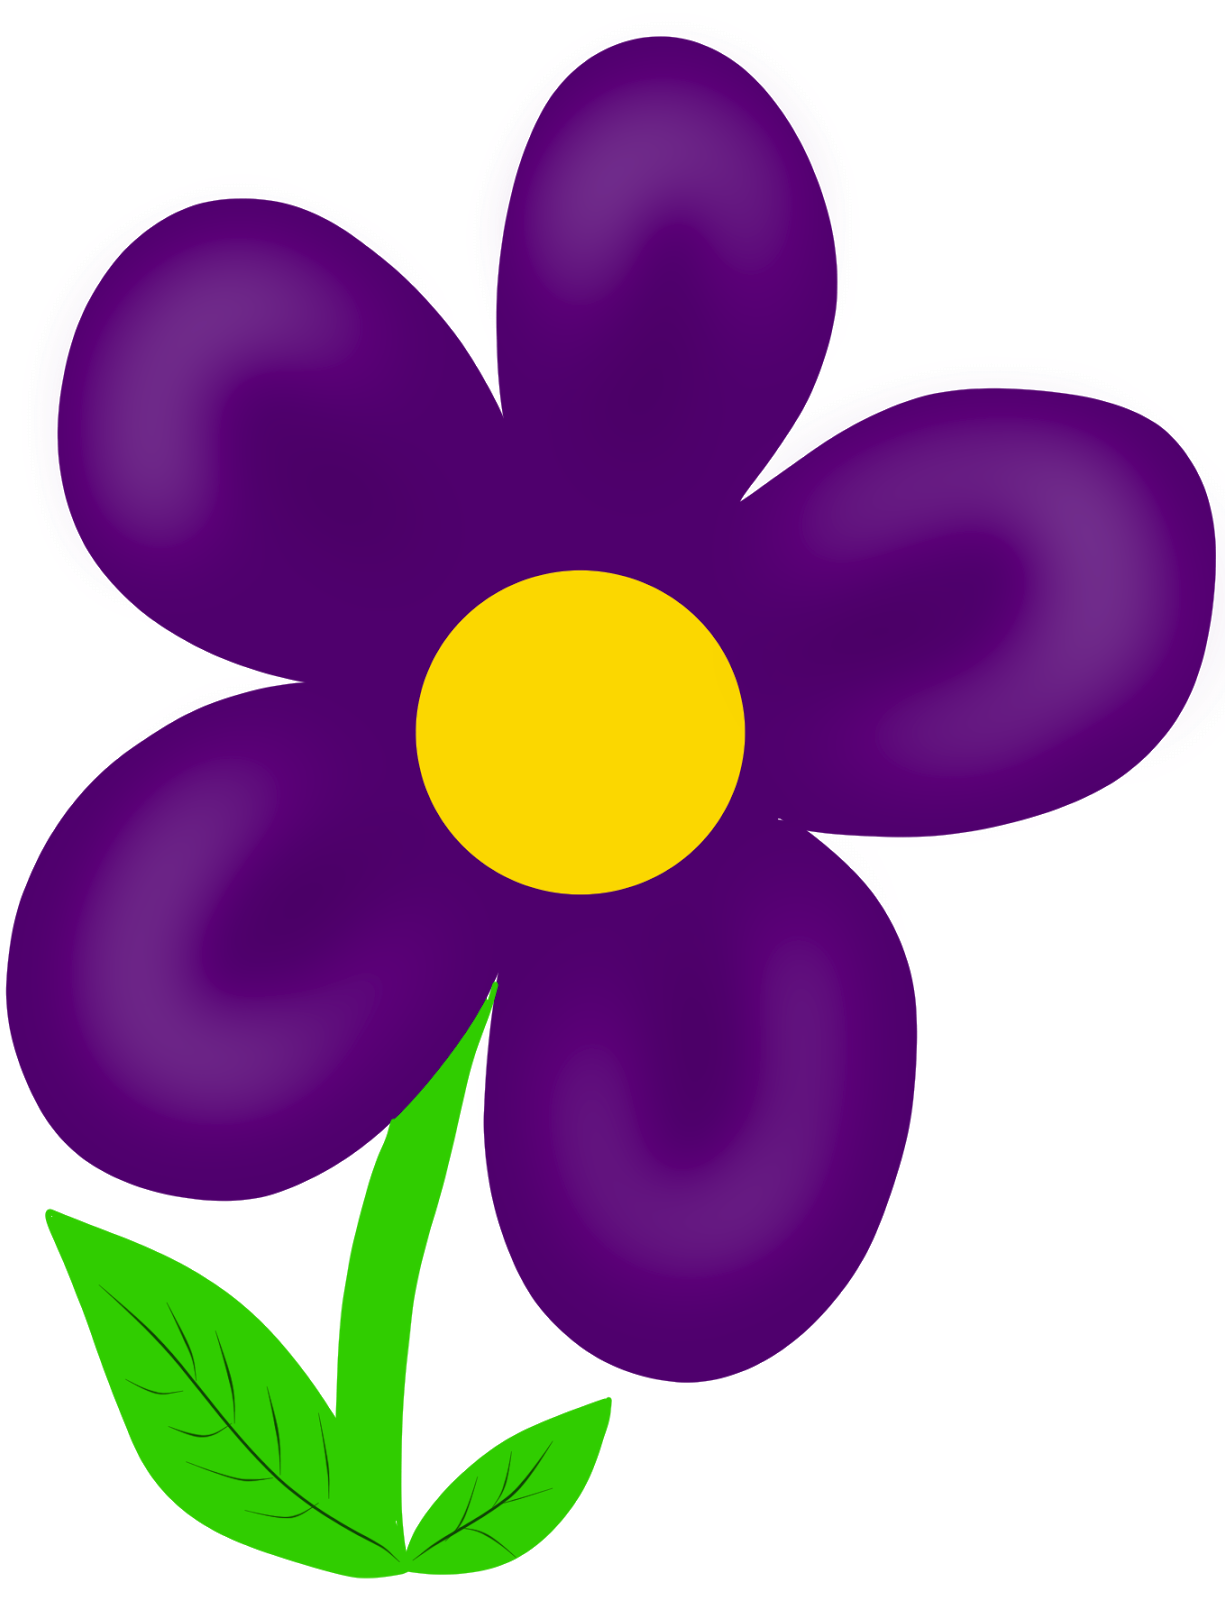 Clock clipart flower. Free football flowers cliparts